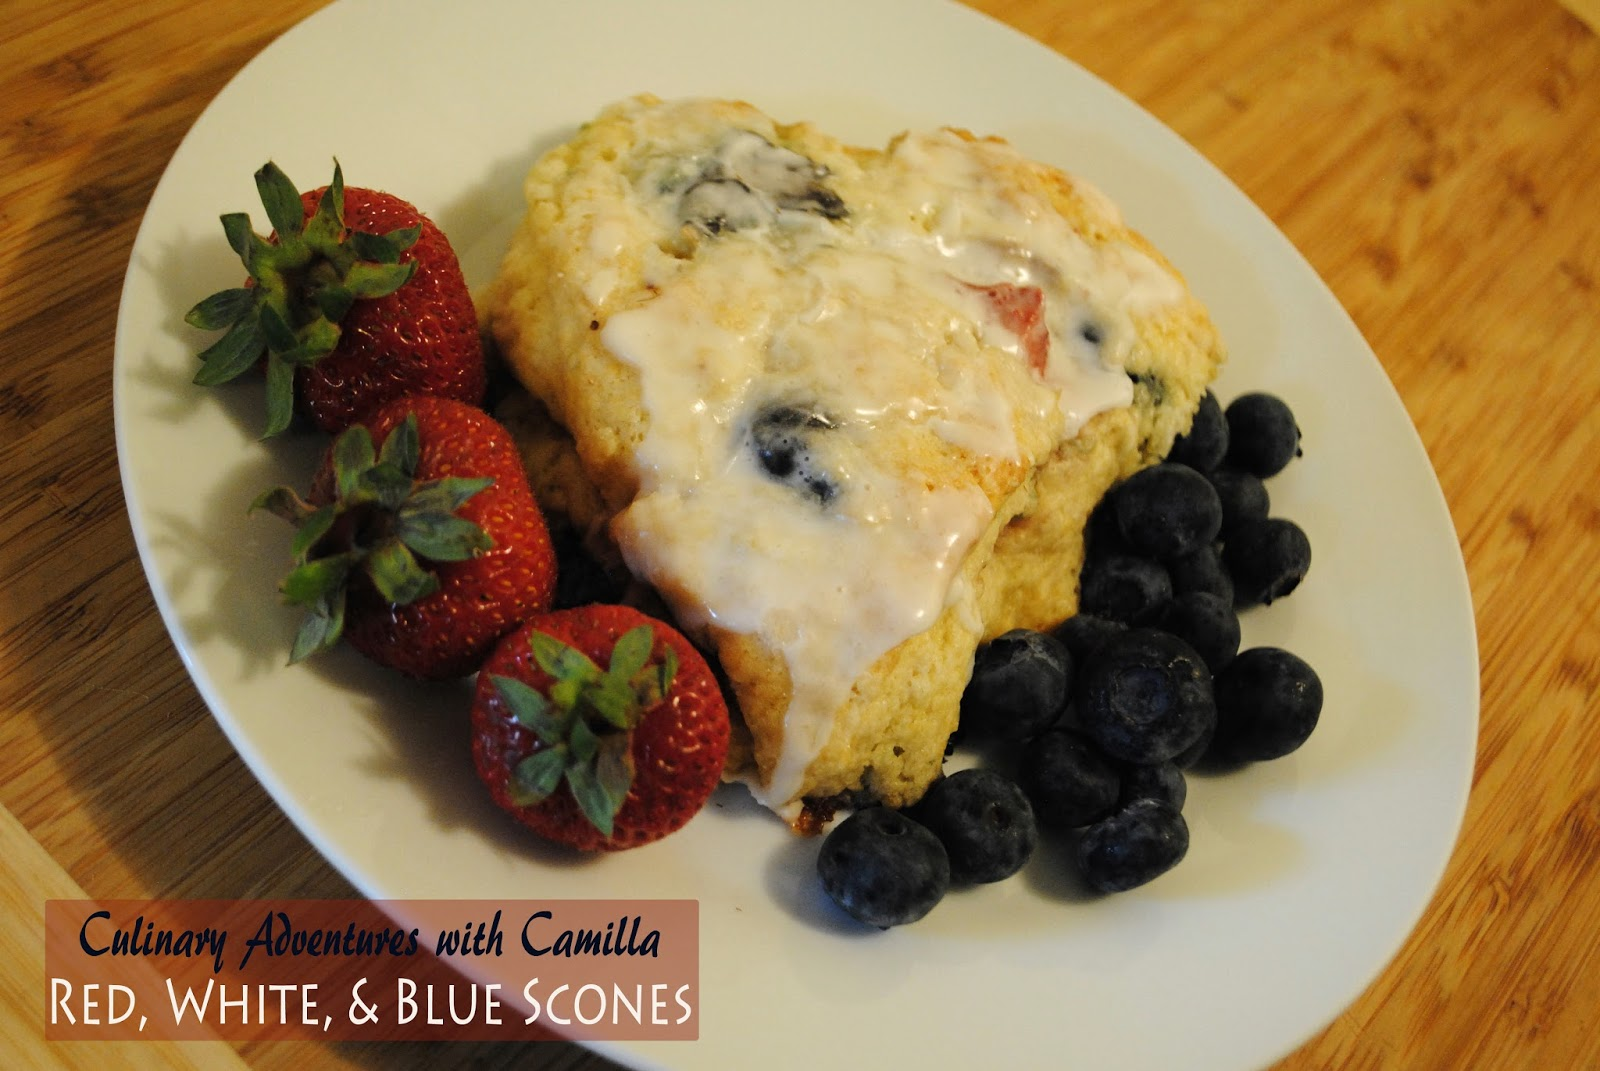 red, white & blue scones